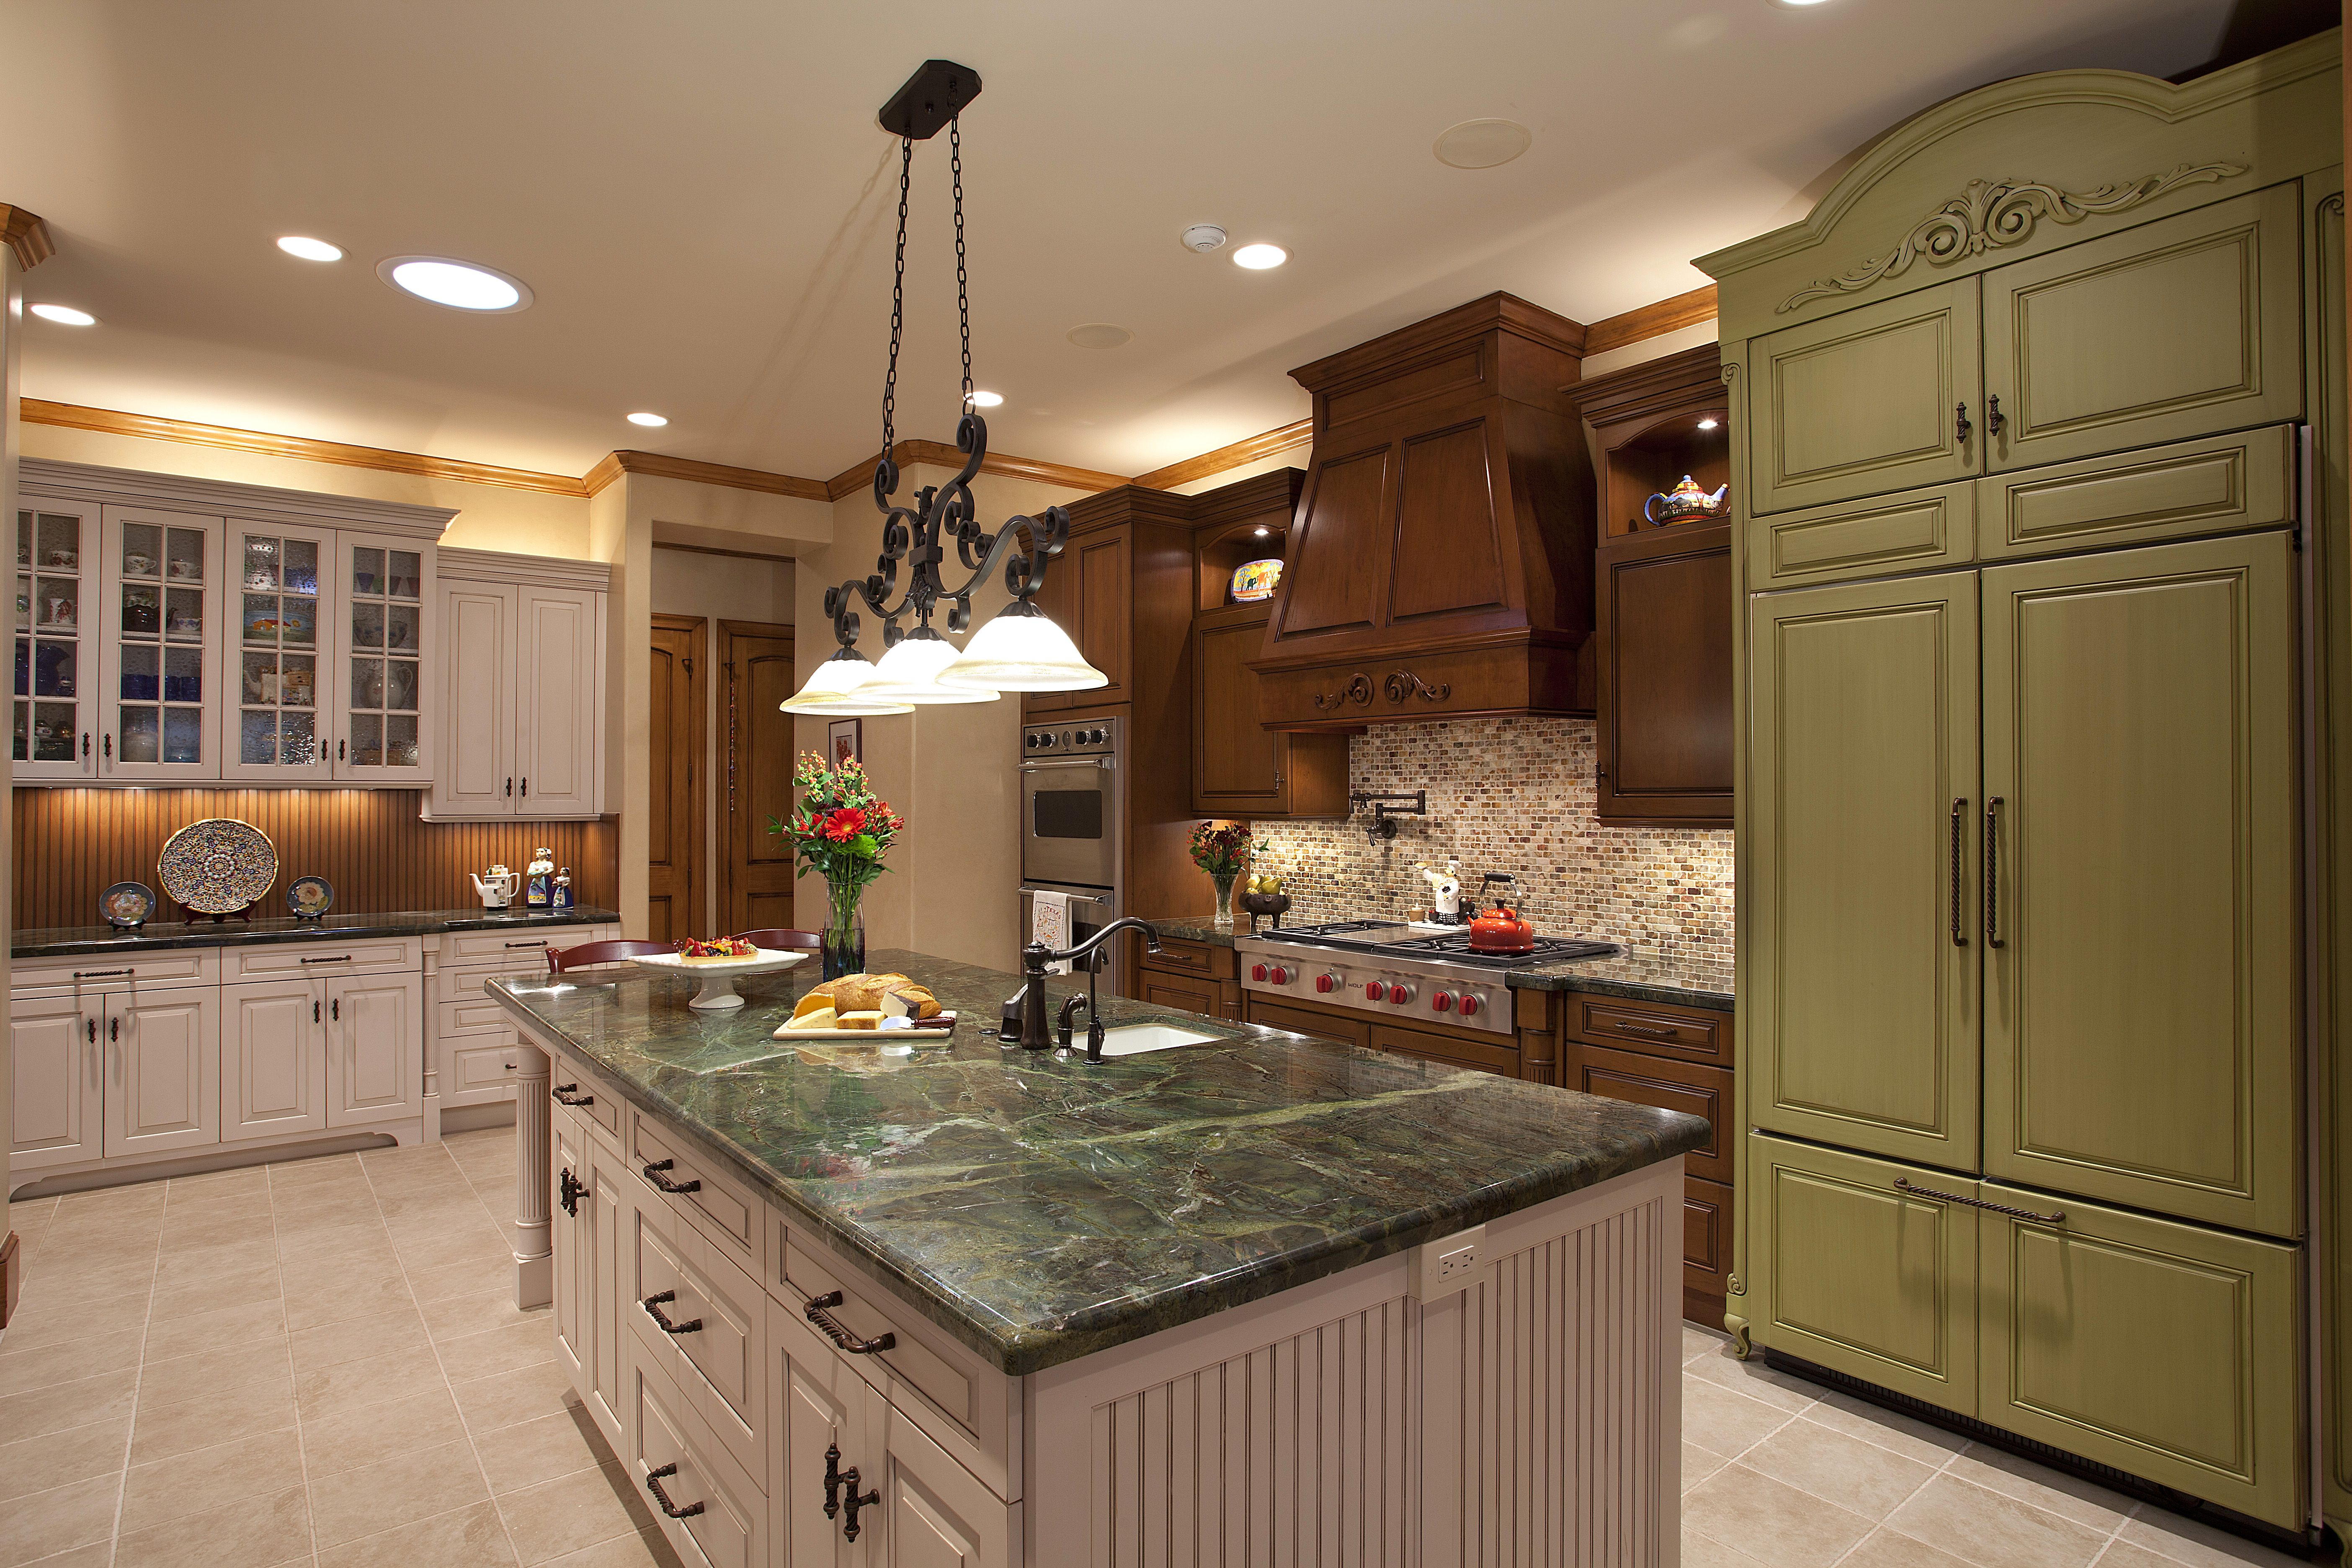 Kitchen Remodel With A Mixture Of Wood Mode And Brookhaven Cabinetry Frechn Door Refrigerator Panels In Wood Mo Refrigerator Panels Kitchen Remodel Wood Mode